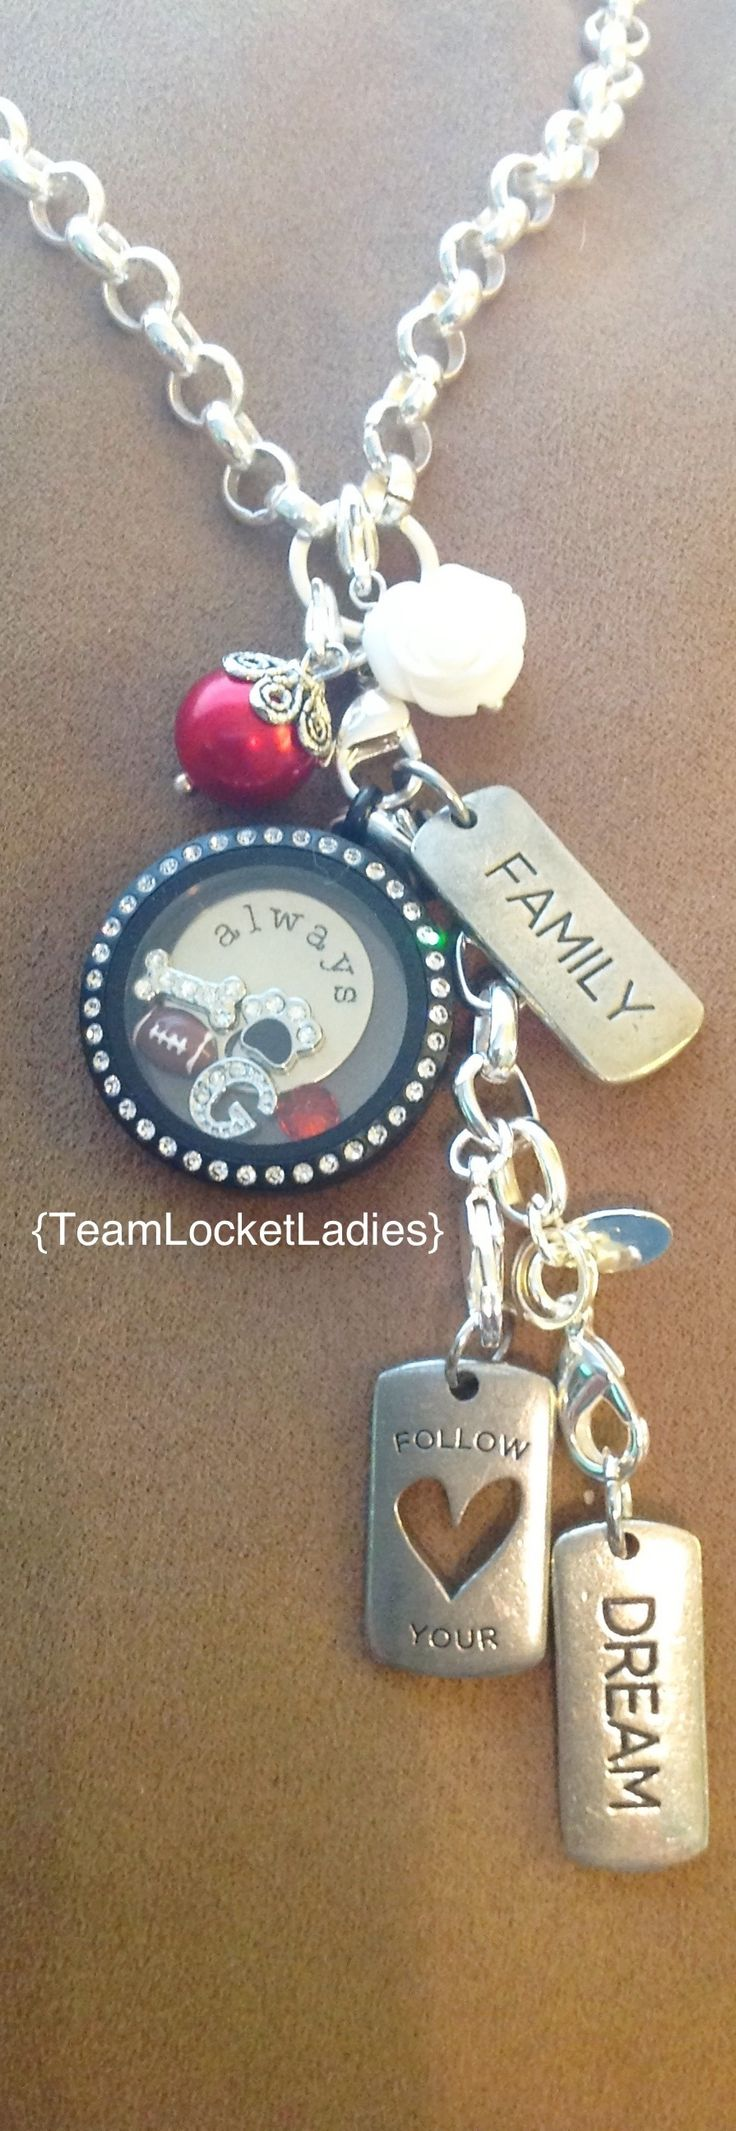 Love this Georgia bulldog style find me on Facebook to order your custom living locket. we can make one to represent YOUR school or team of choice!!!